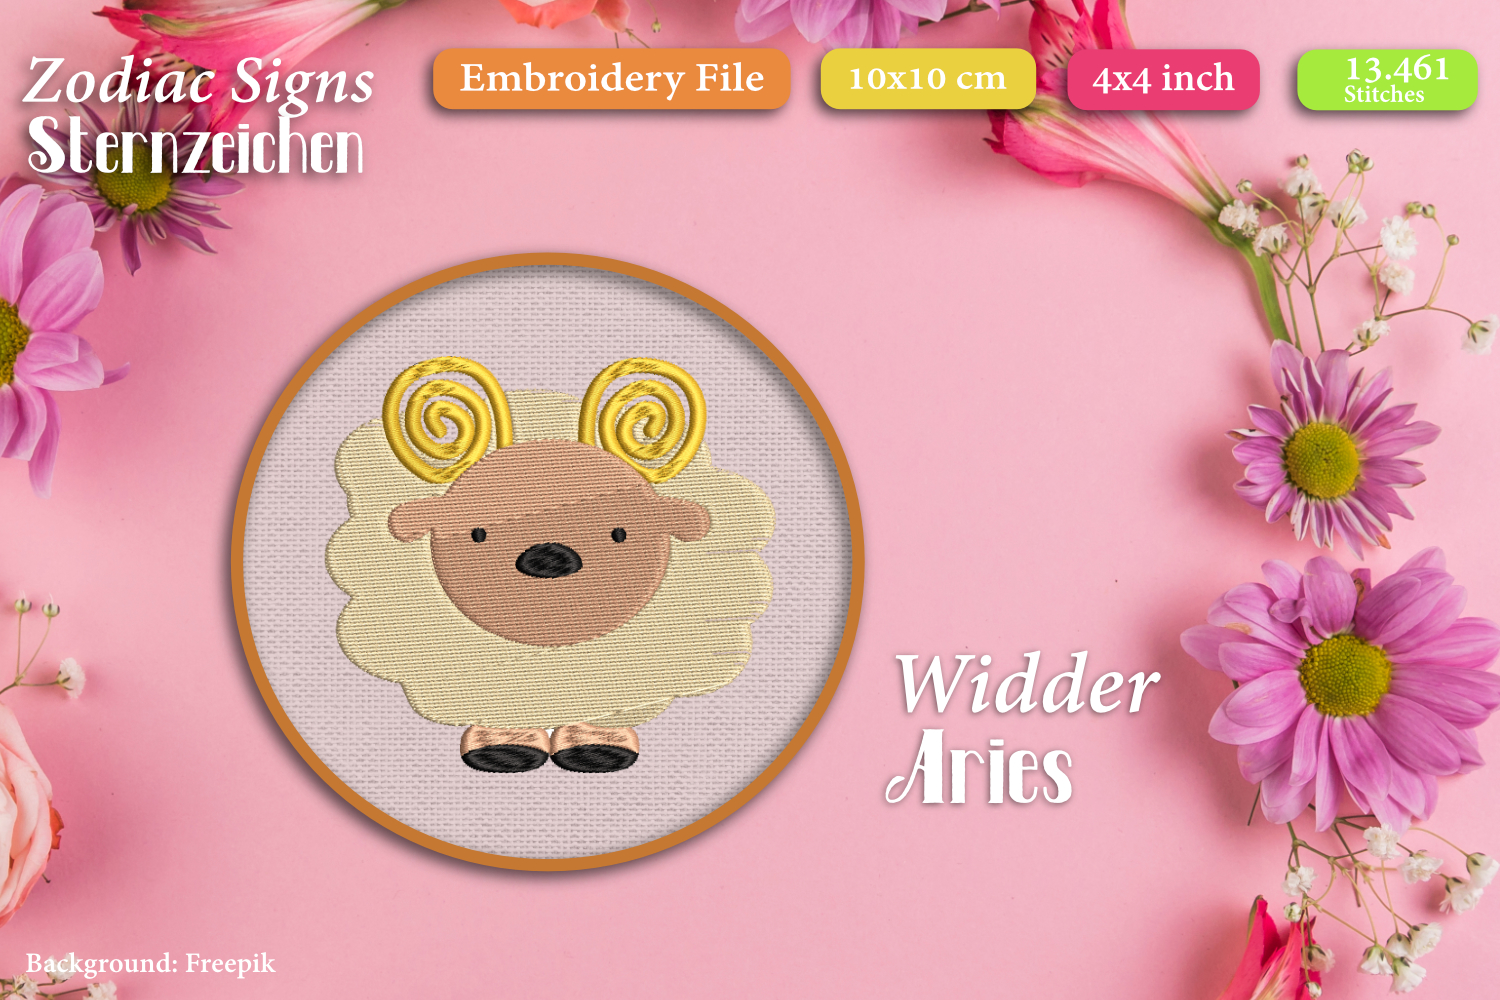 Zodiac signs - Embroidery Files - Bundle example image 5